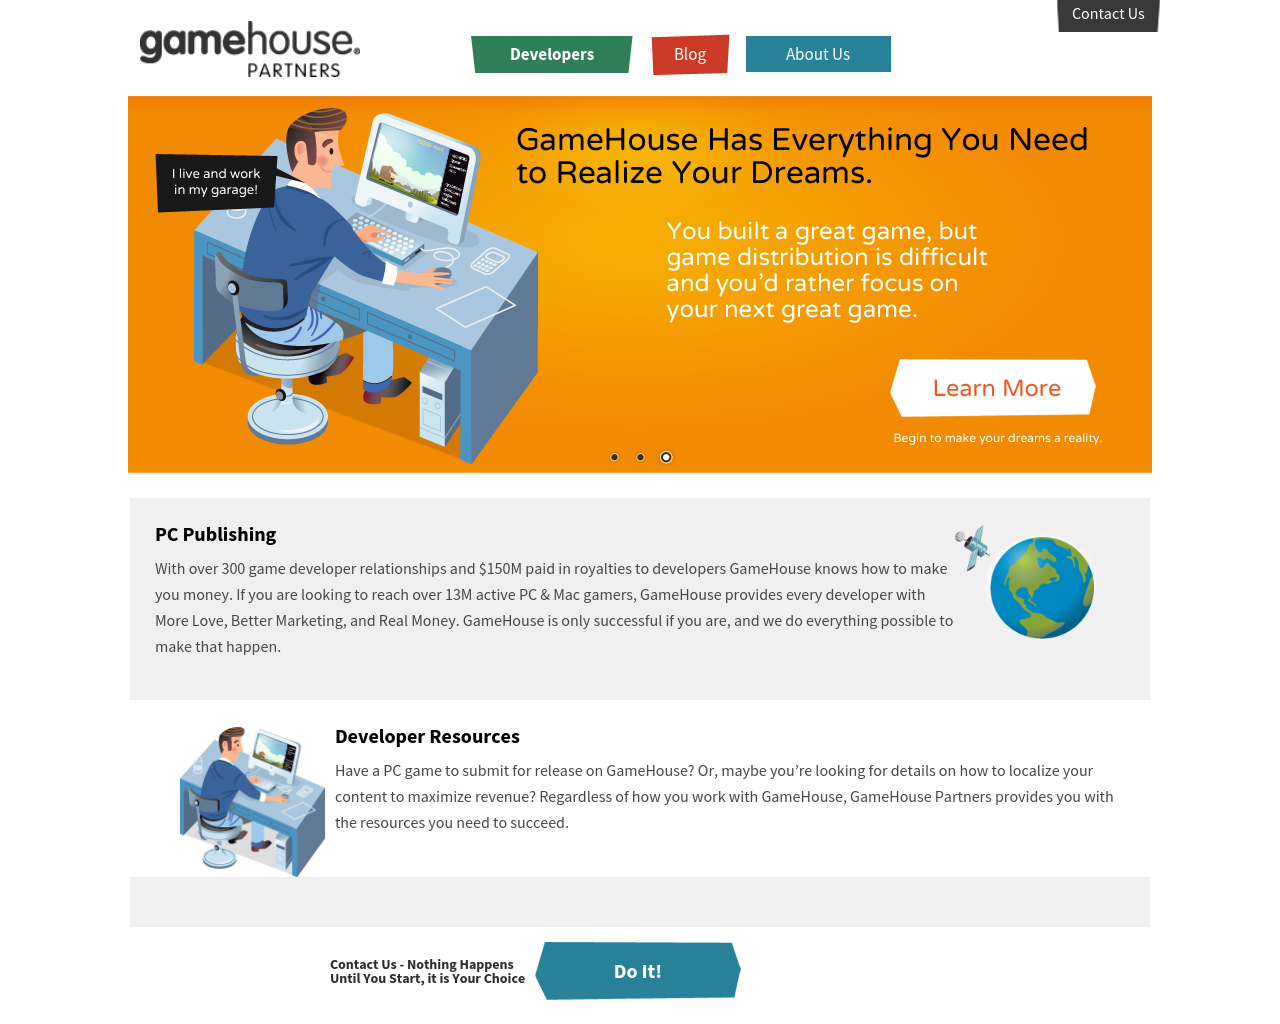 Gamehouse-Promotion-Network-Advertising-Reviews-Pricing